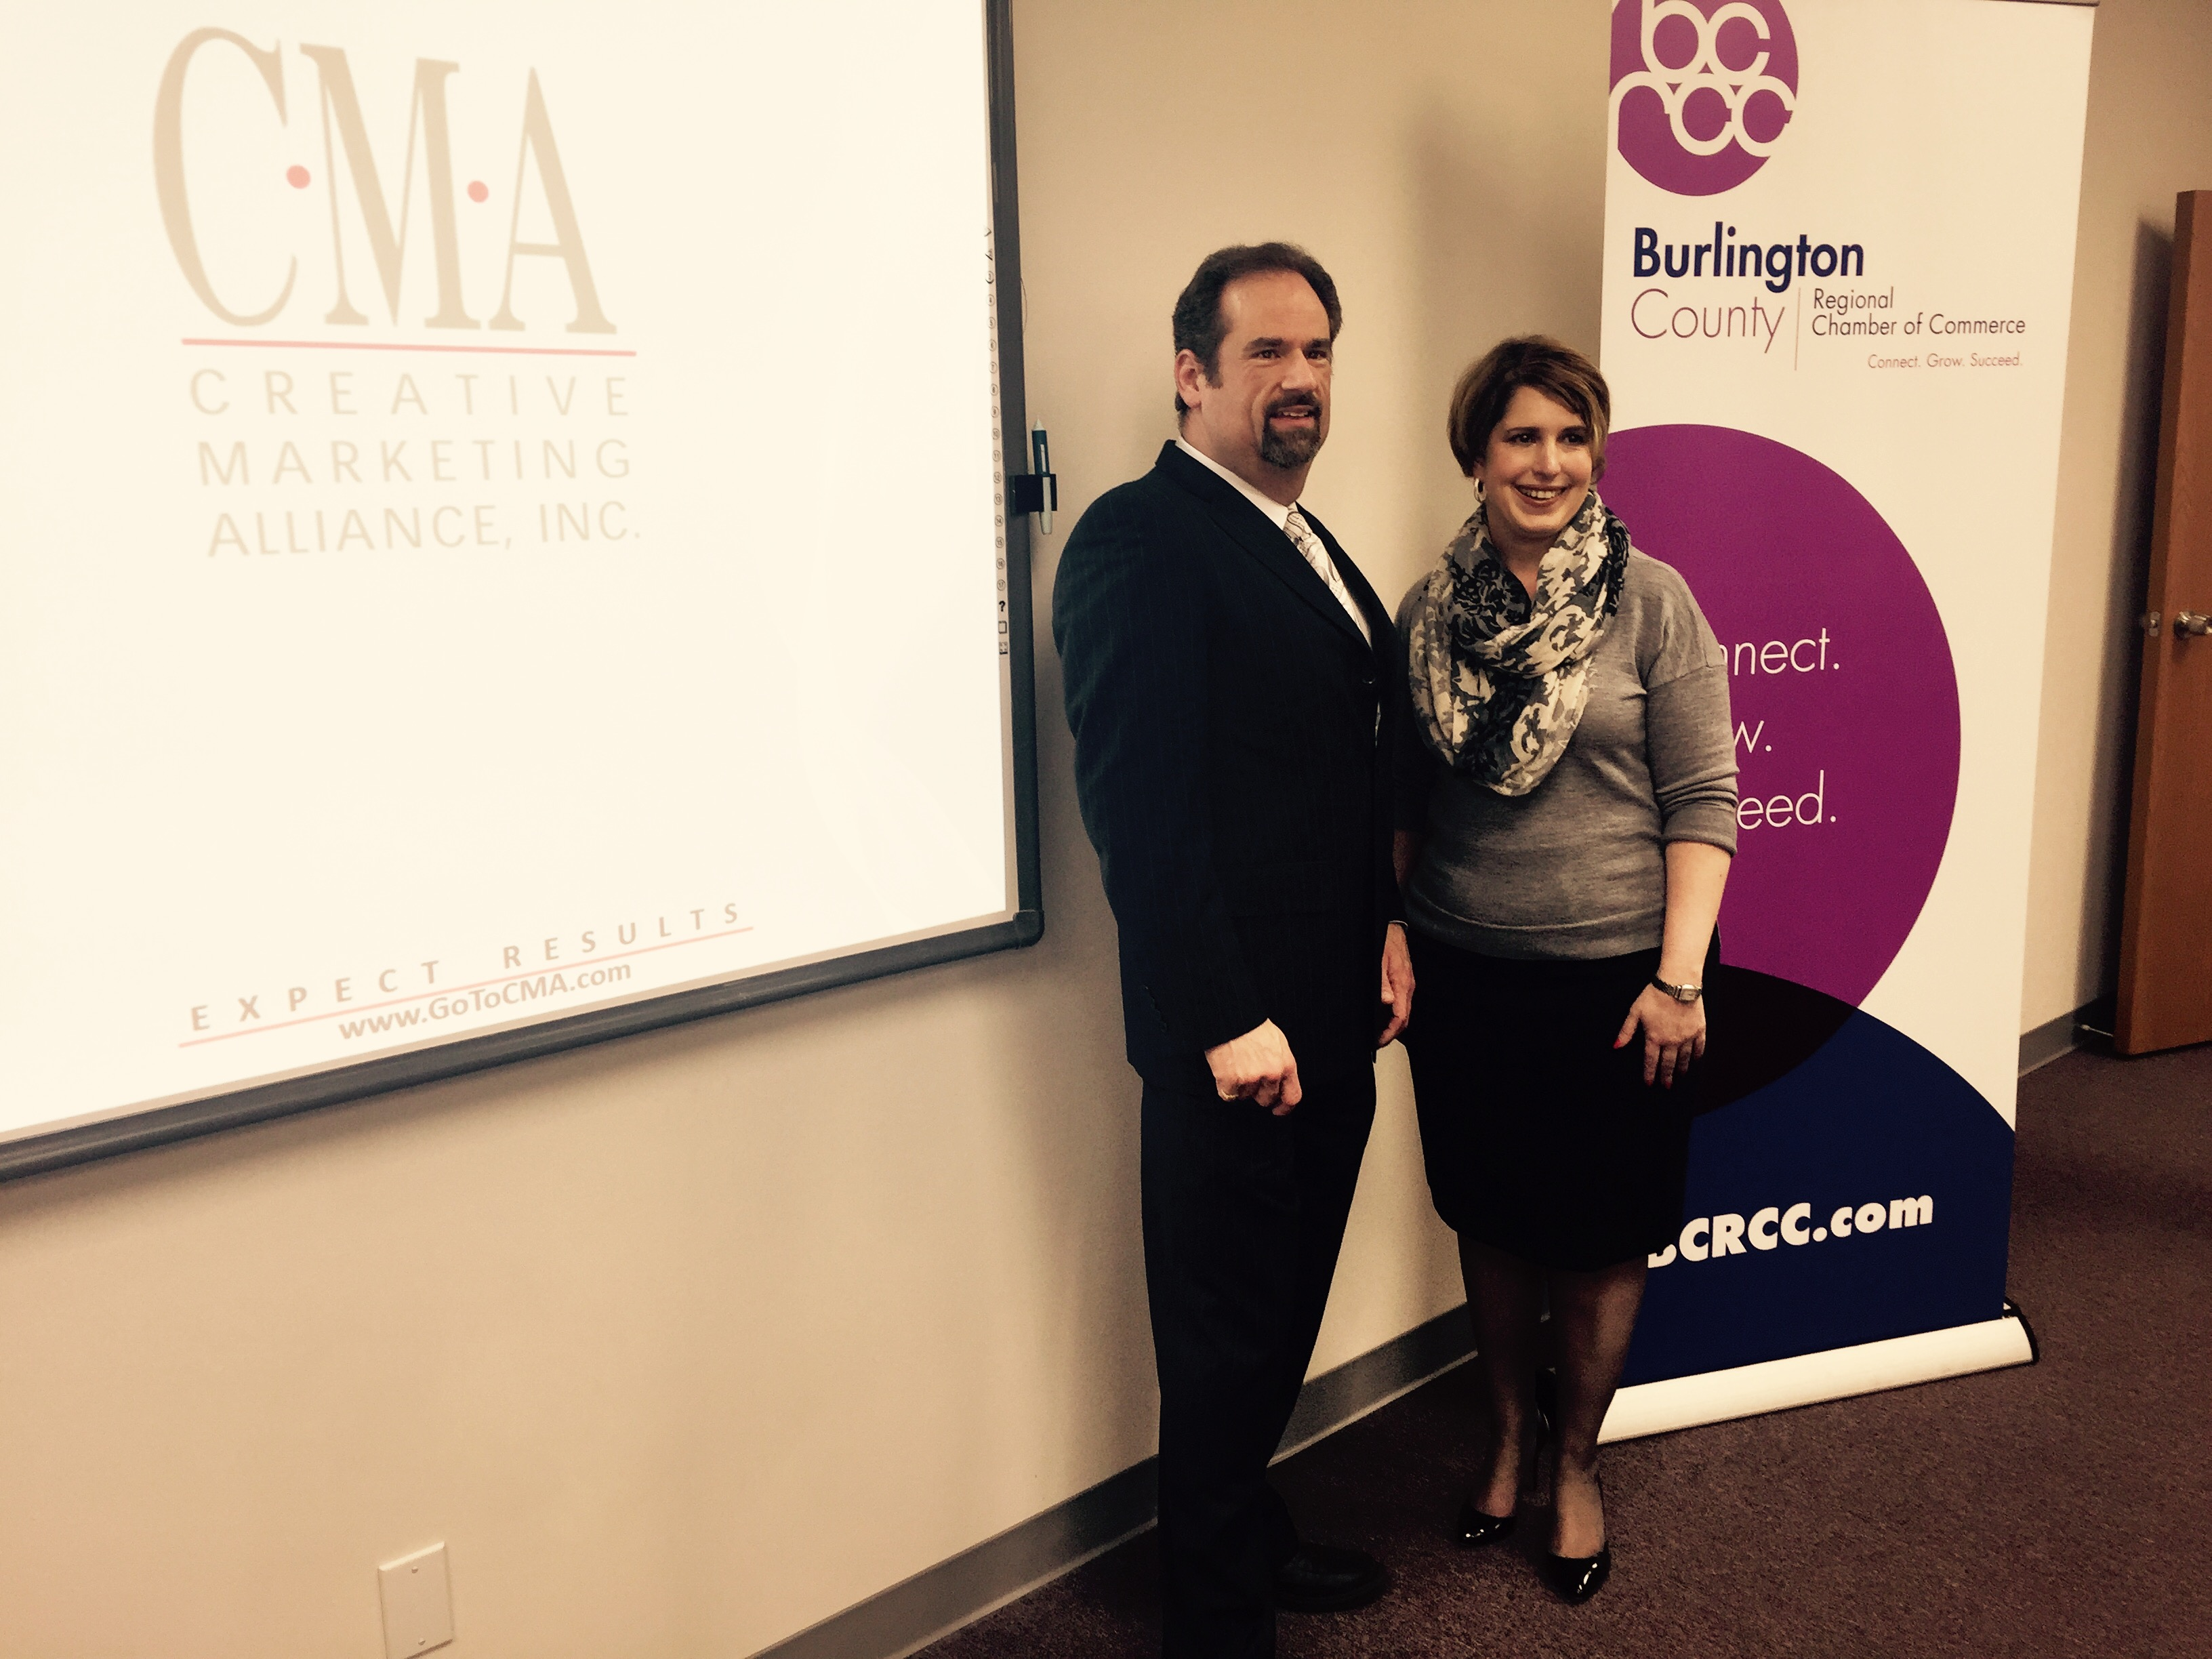 Kenneth Hitchner, public relations and social media director at CMA and Kristi Howell, BCRCC president. CMA recently rebranded the BCRCC.